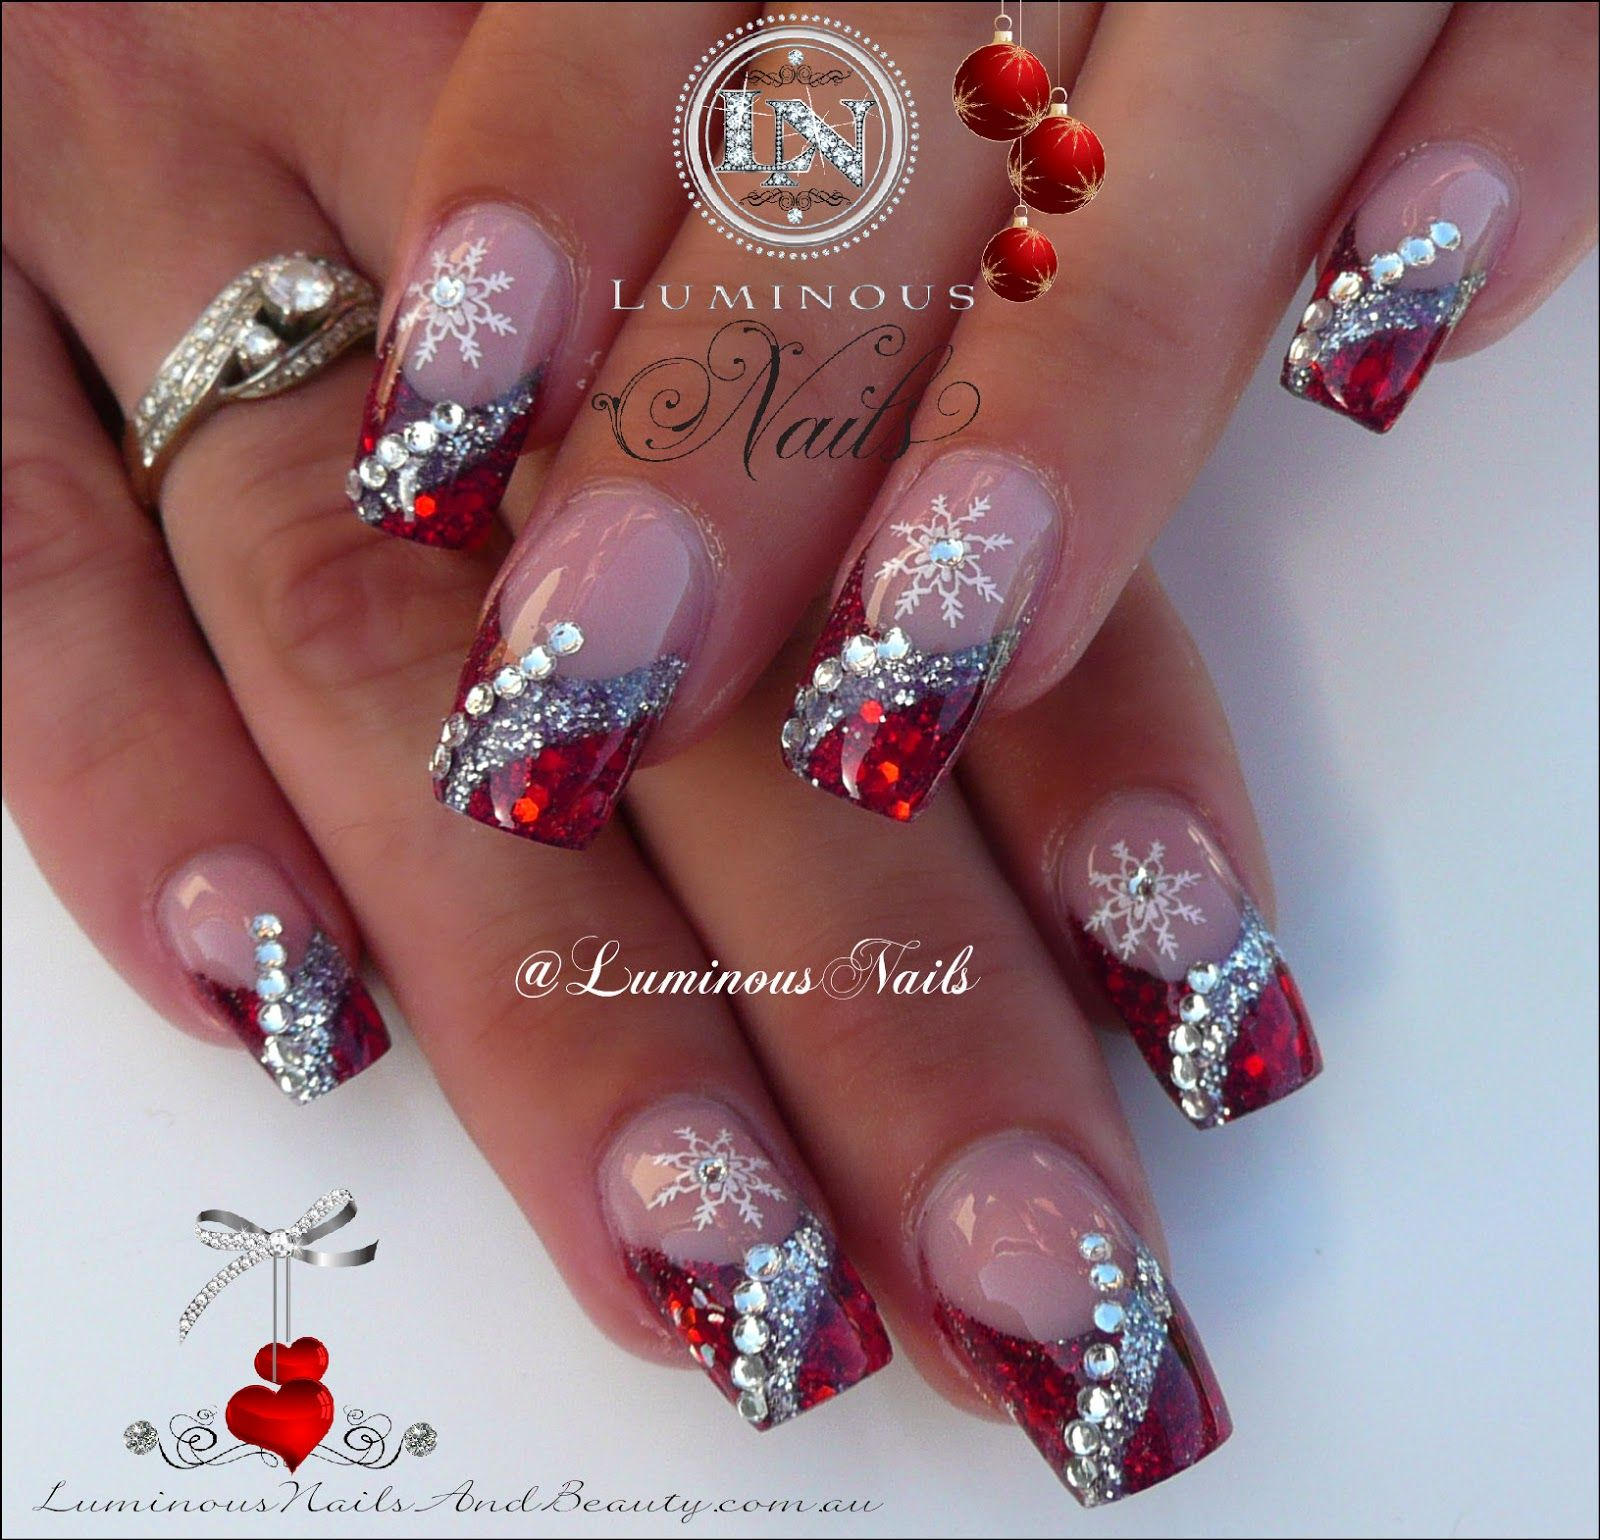 Christmas Designs For Acrylic Nails: Luminous Nails: Red & Silver Acrylic Christmas Nails